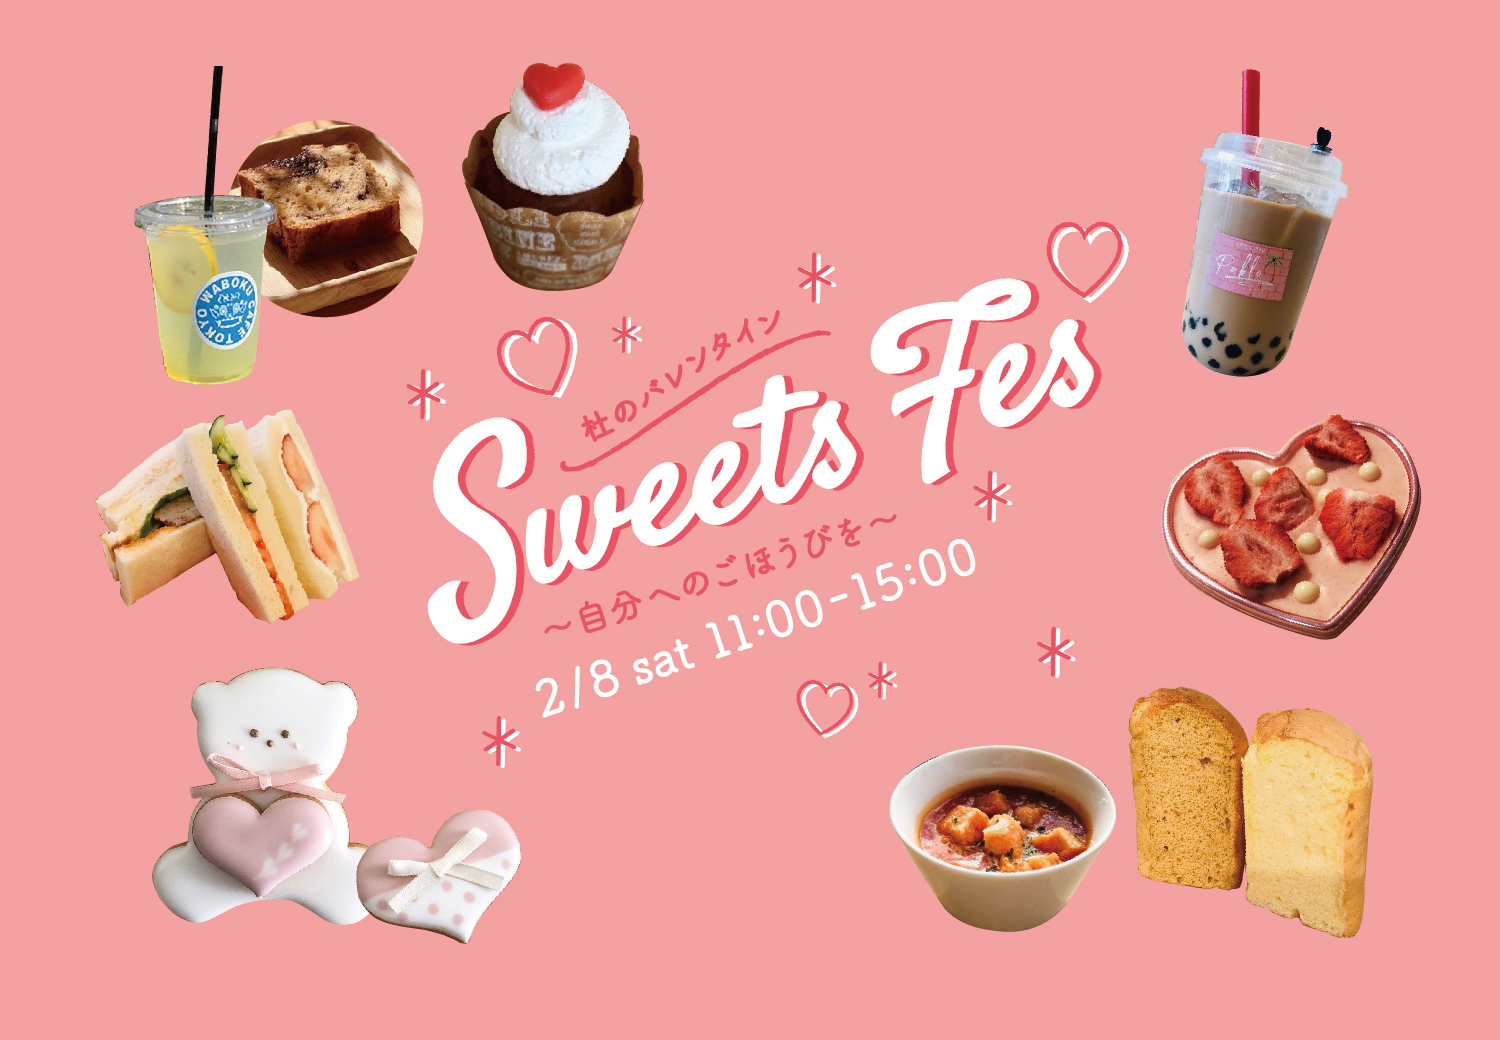 sweets fes 2020